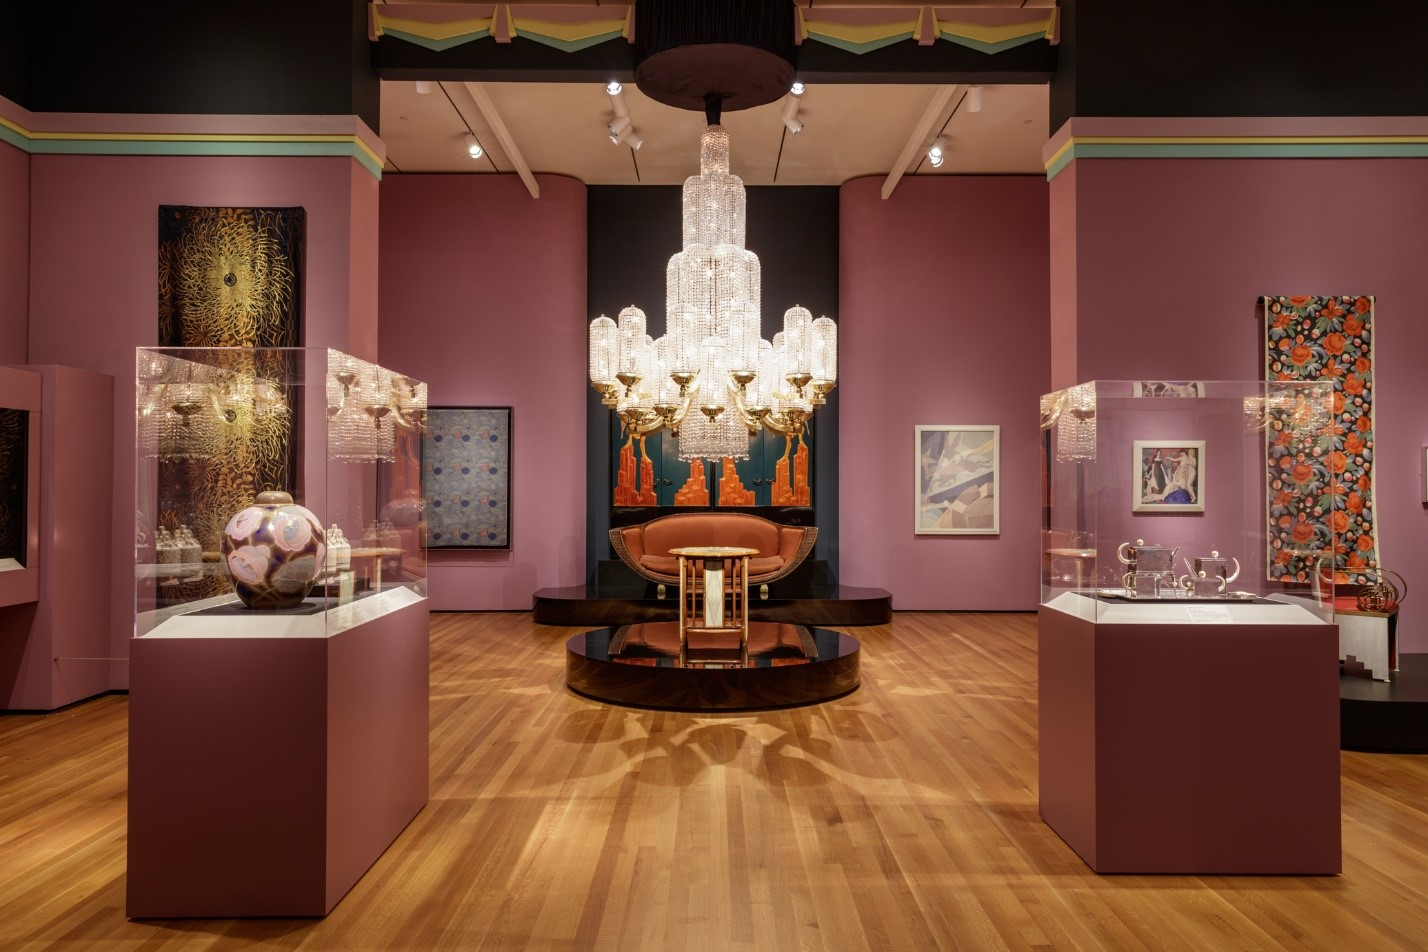 A gallery from the exhibition The Jazz Age: American Style in the 1920s, with decorative arts like a chandelier, furniture, and ceramics on display.